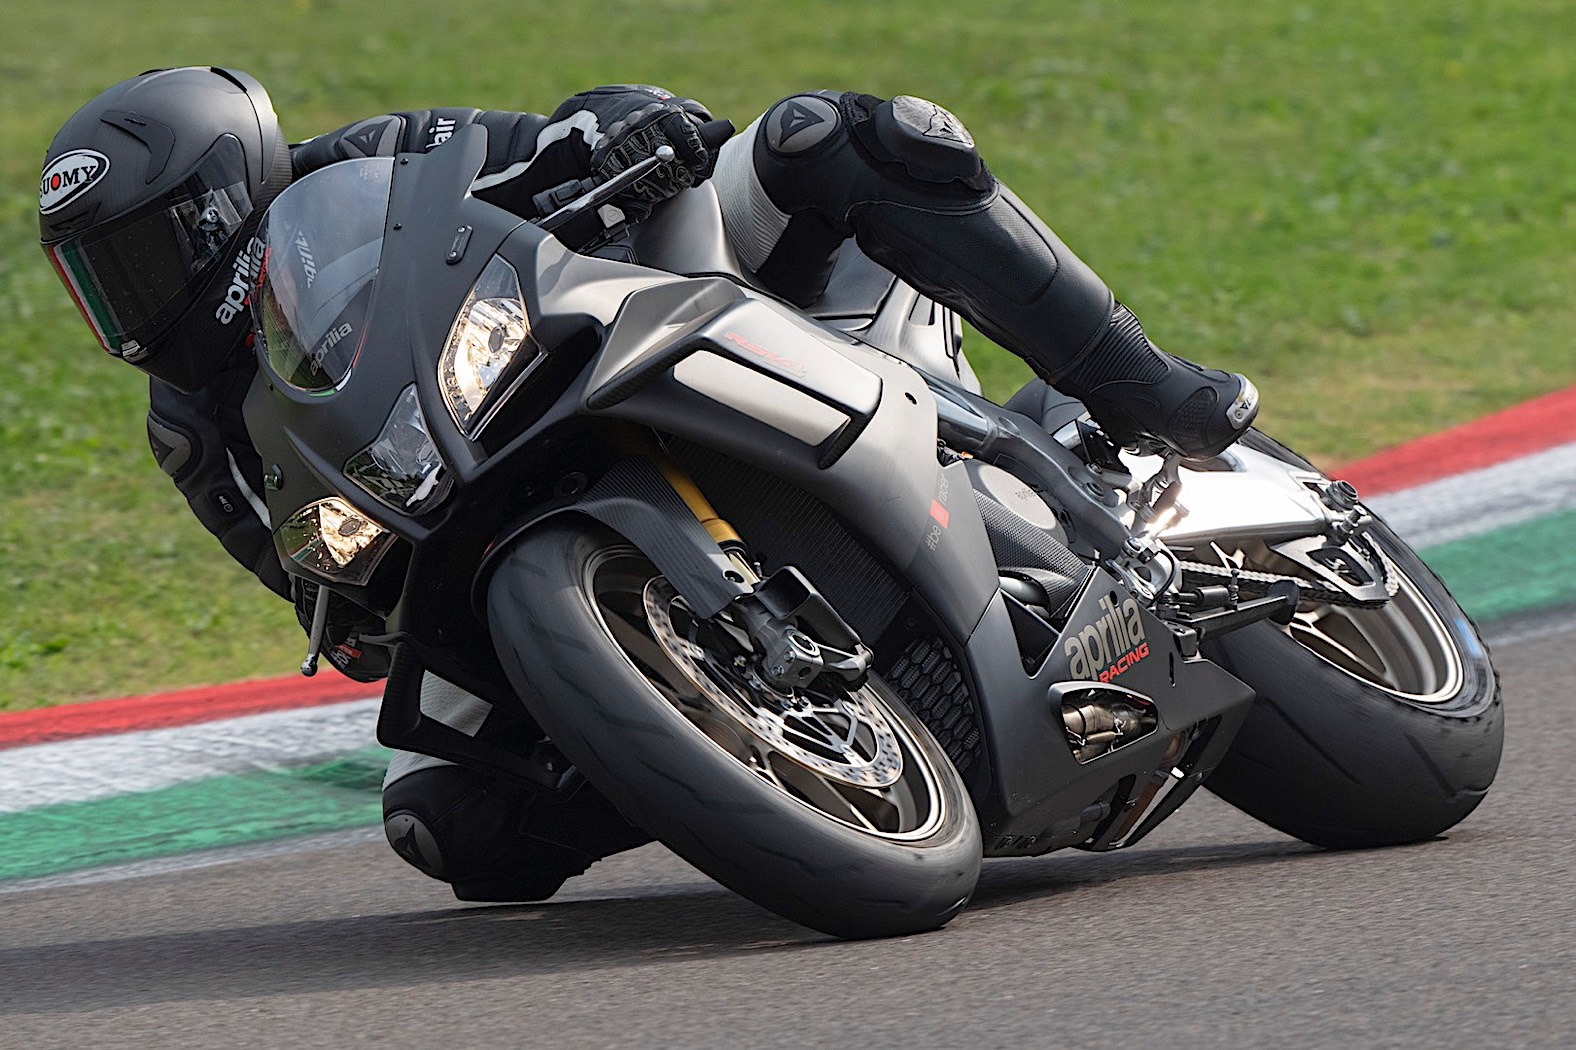 2019 Aprilia Rsv4 1100 Factory Is The Most Powerful Rsv4 Ever